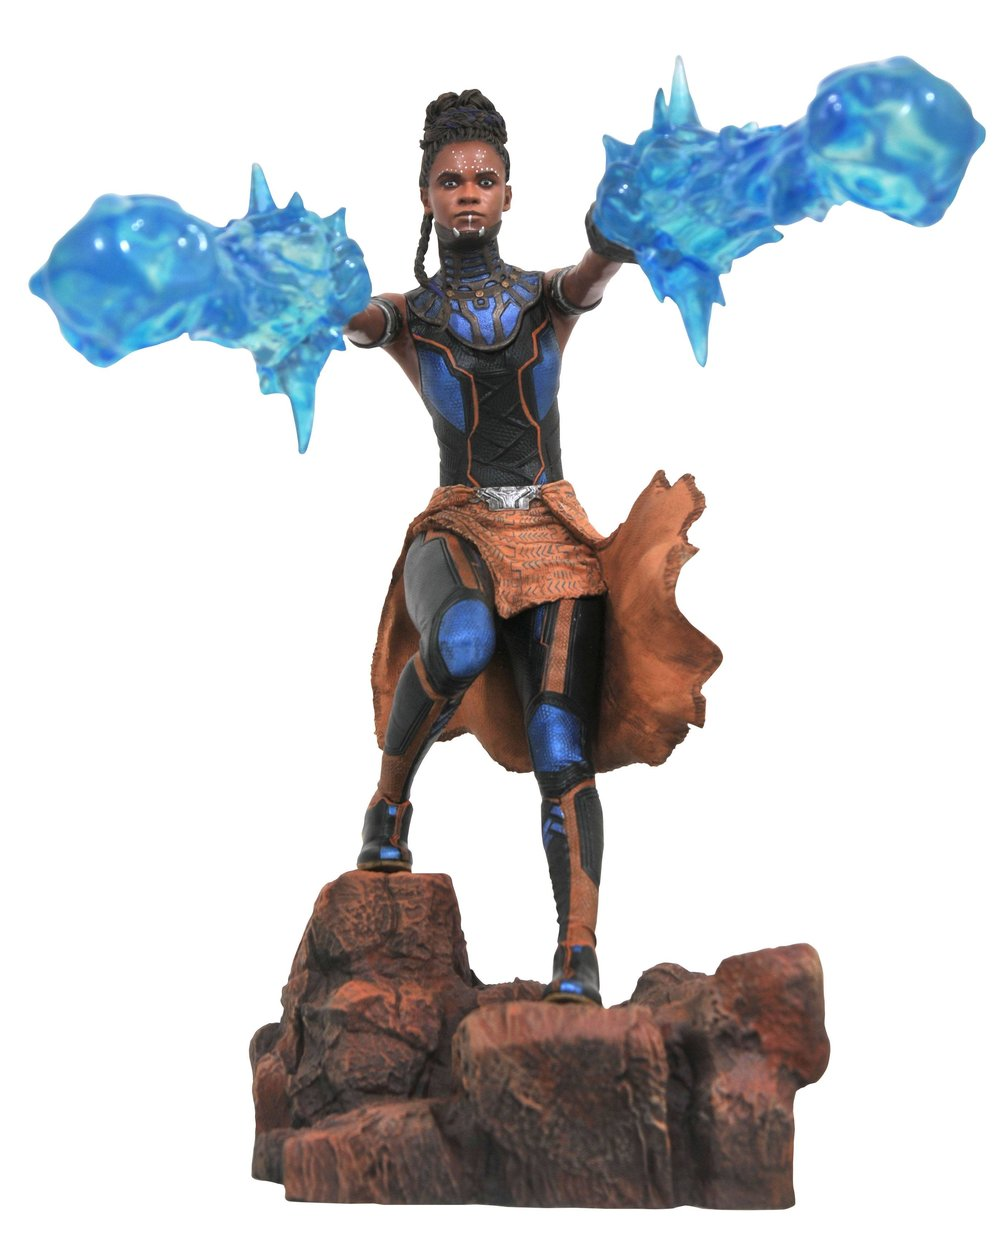 MARVEL GALLERY BLACK PANTHER MOVIE SHURI PVC FIGURE.jpg